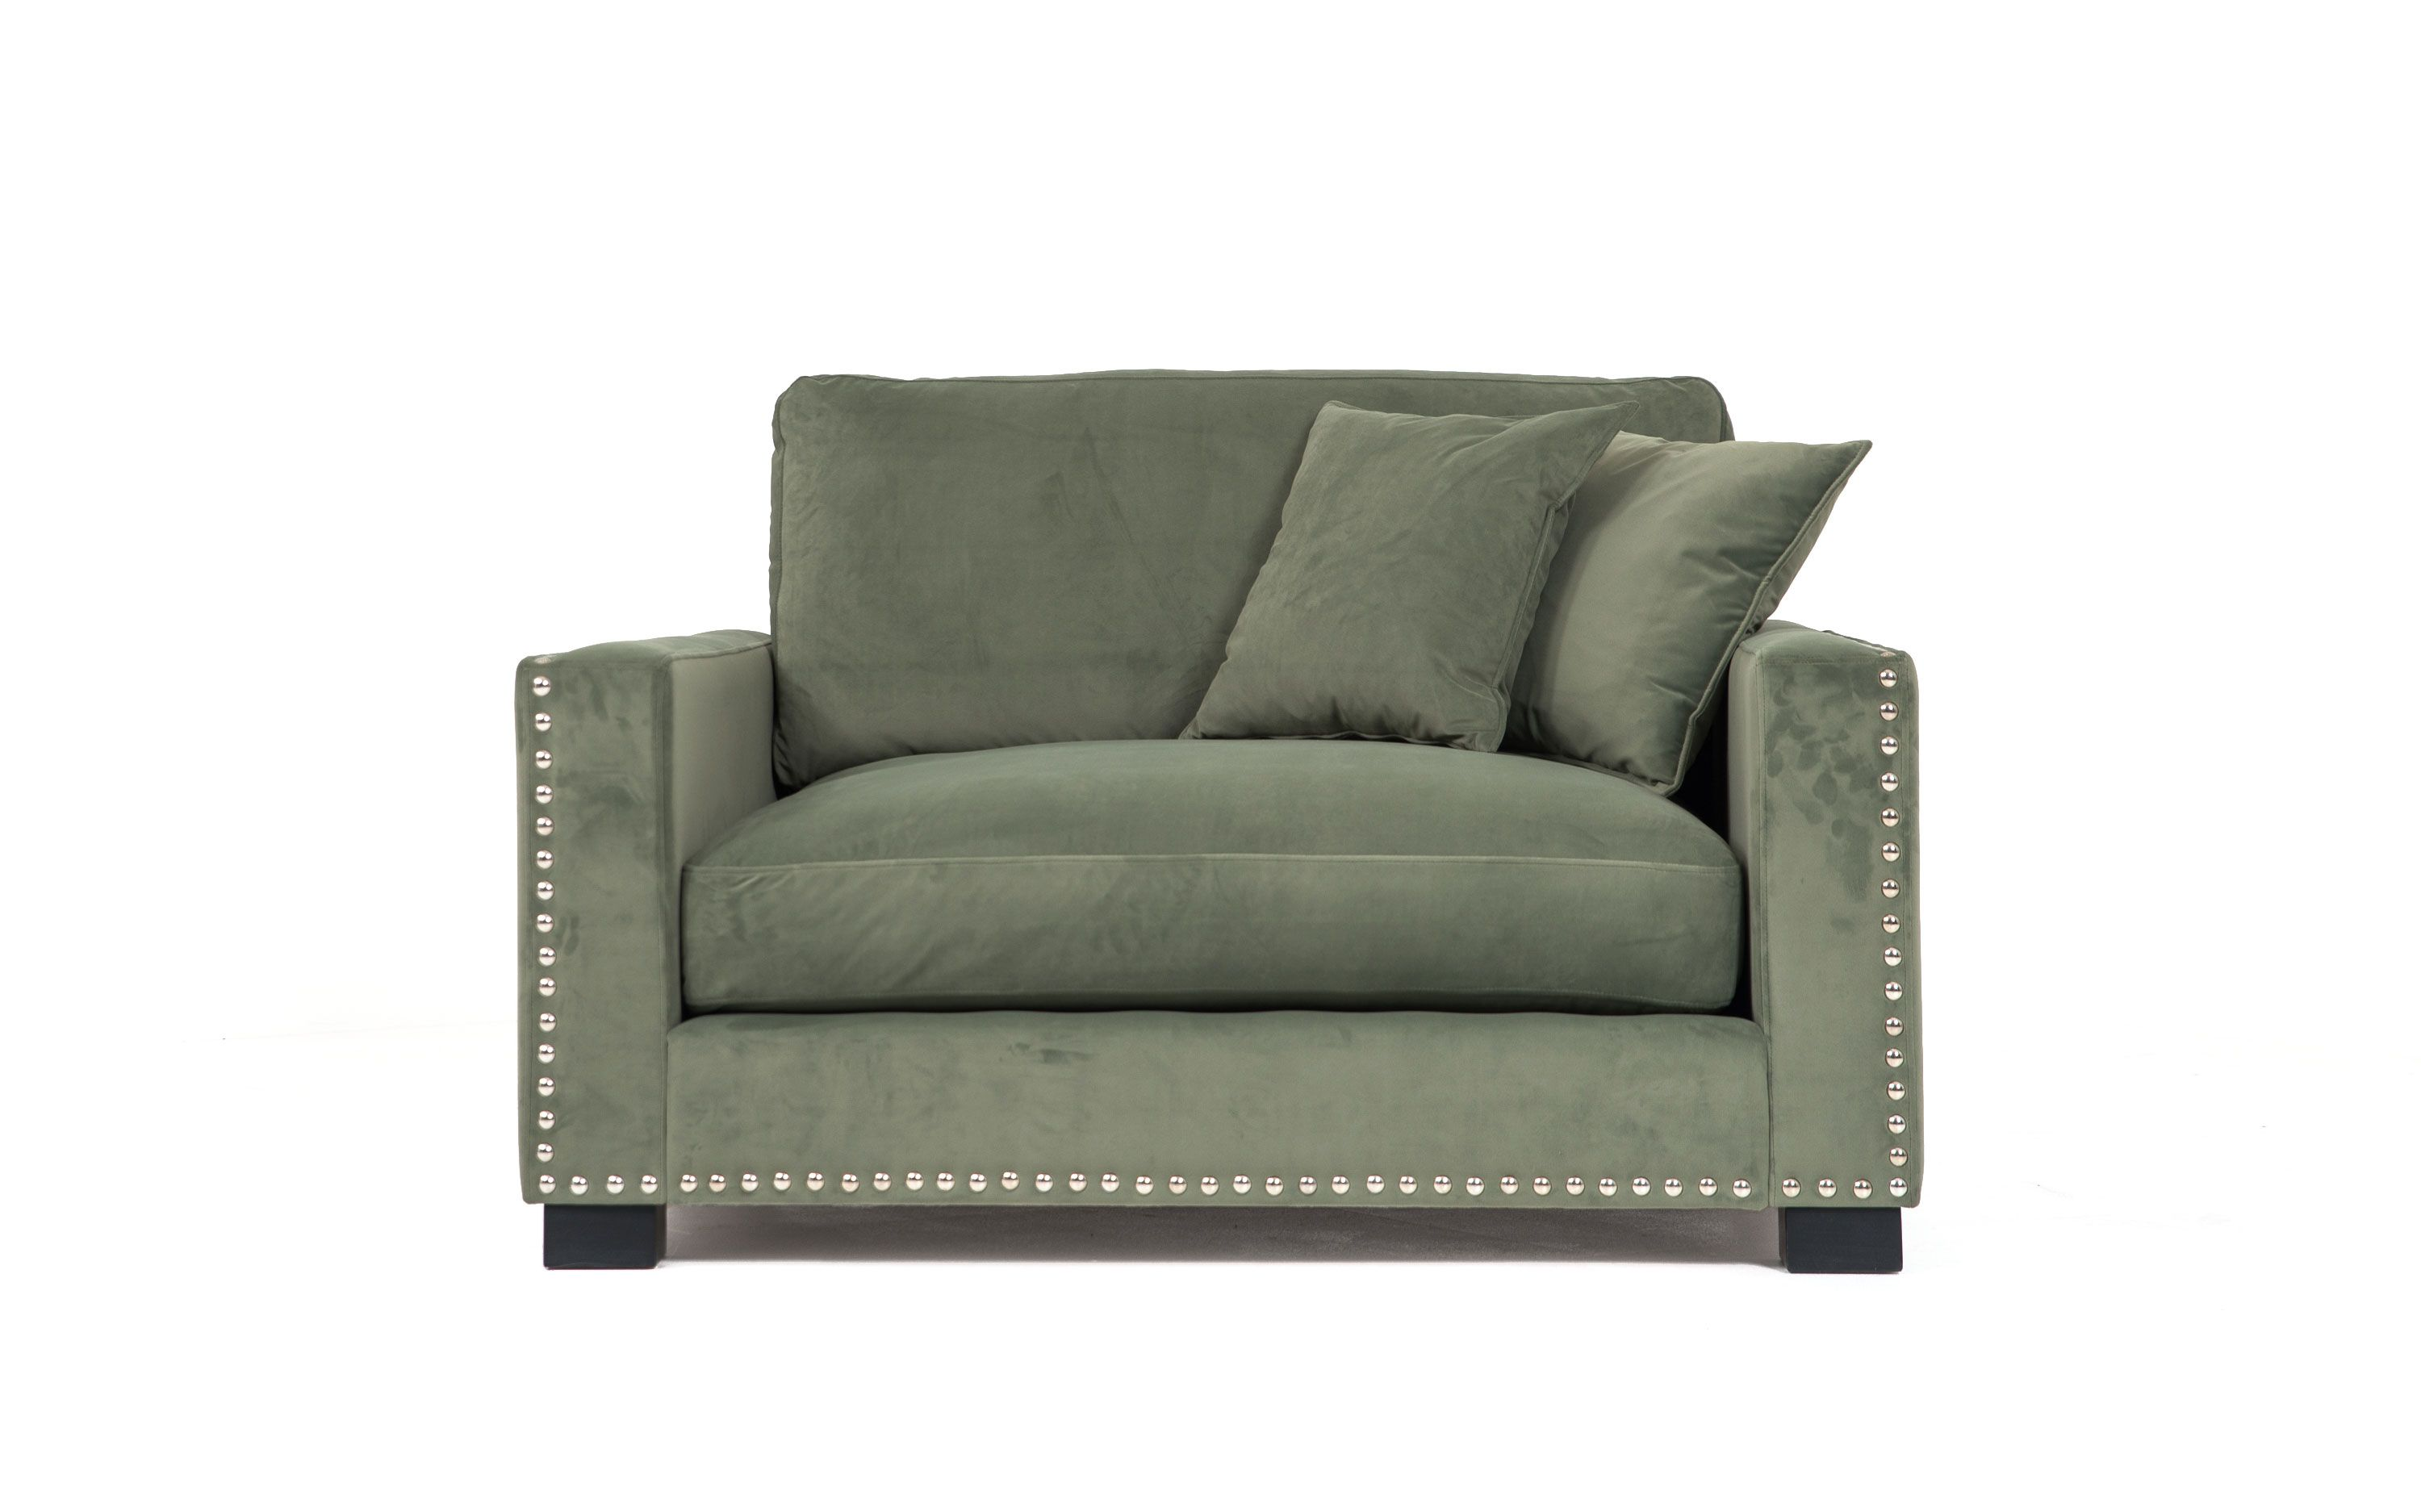 Loveseats and Silver on Pinterest